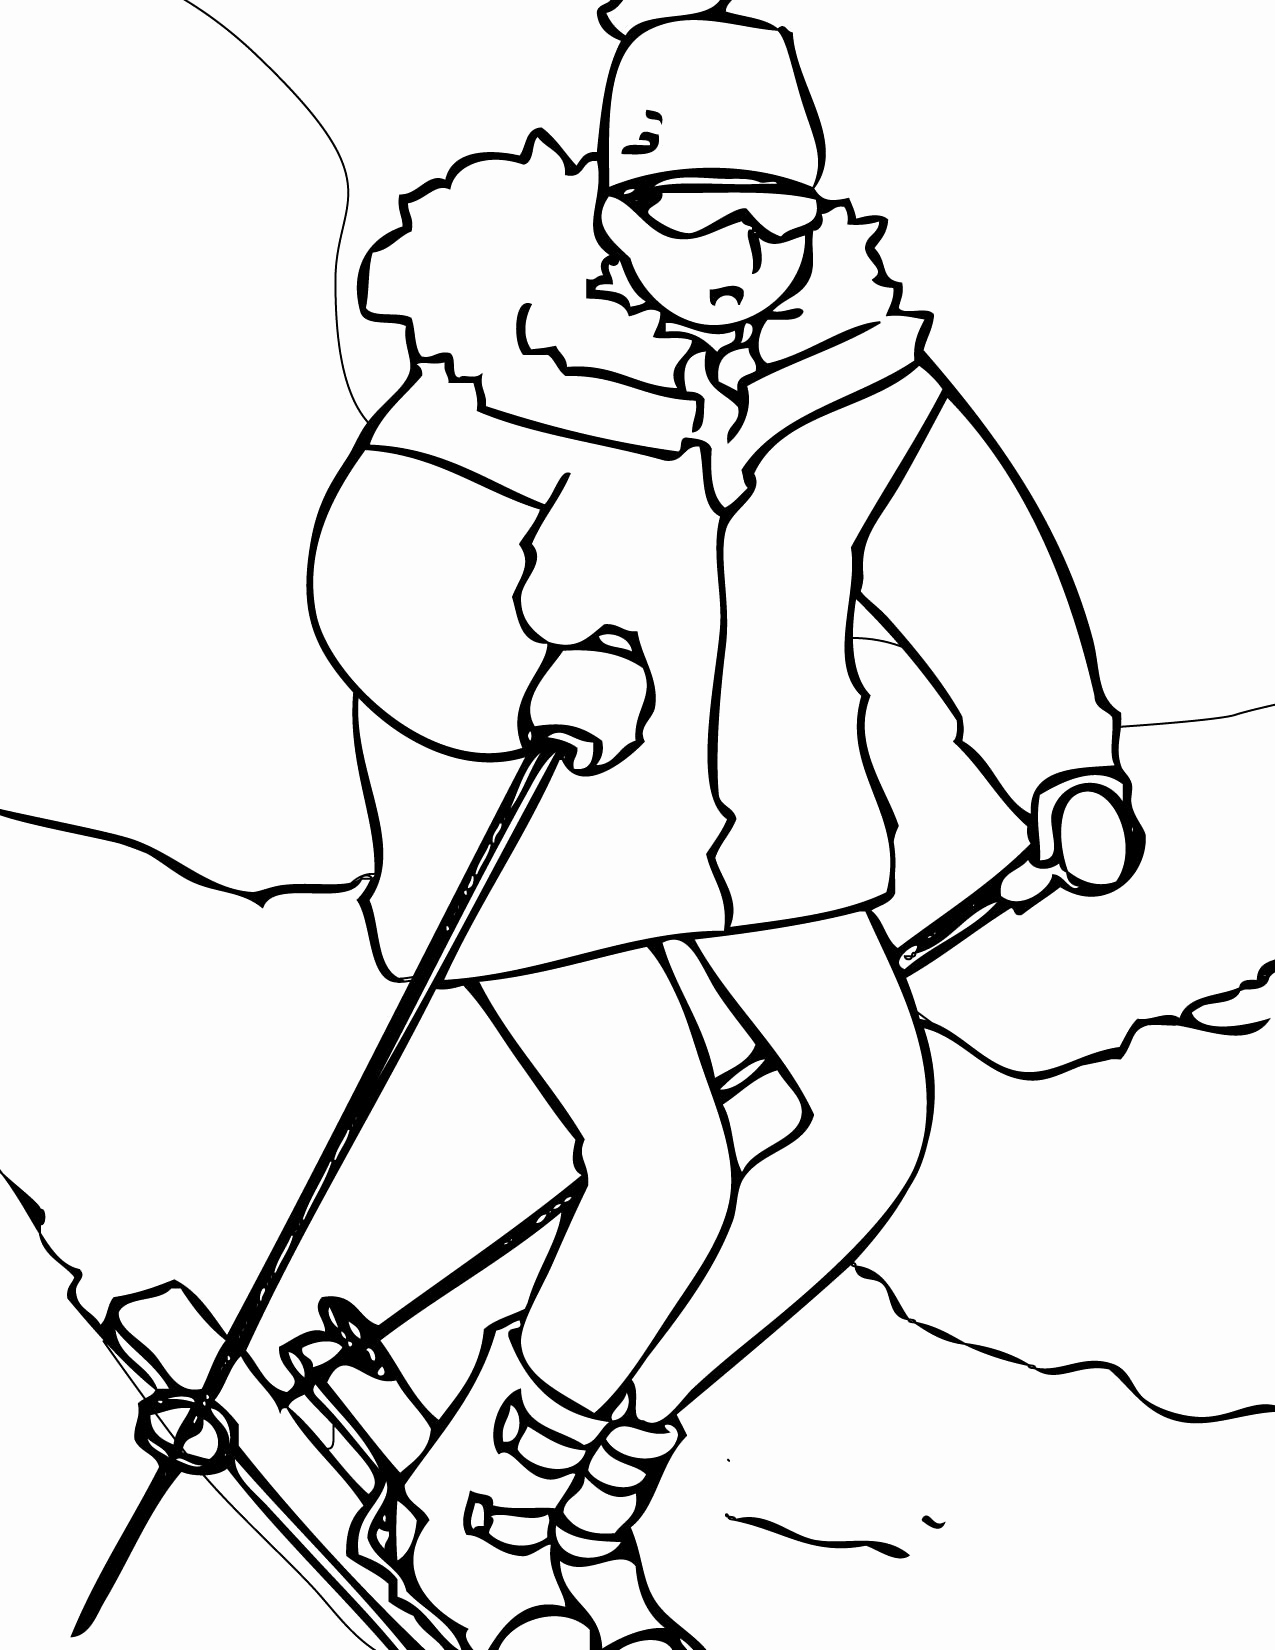 1275x1650 Winter Coloring Pages Free Printable Luxury Shrewd Winter Sports